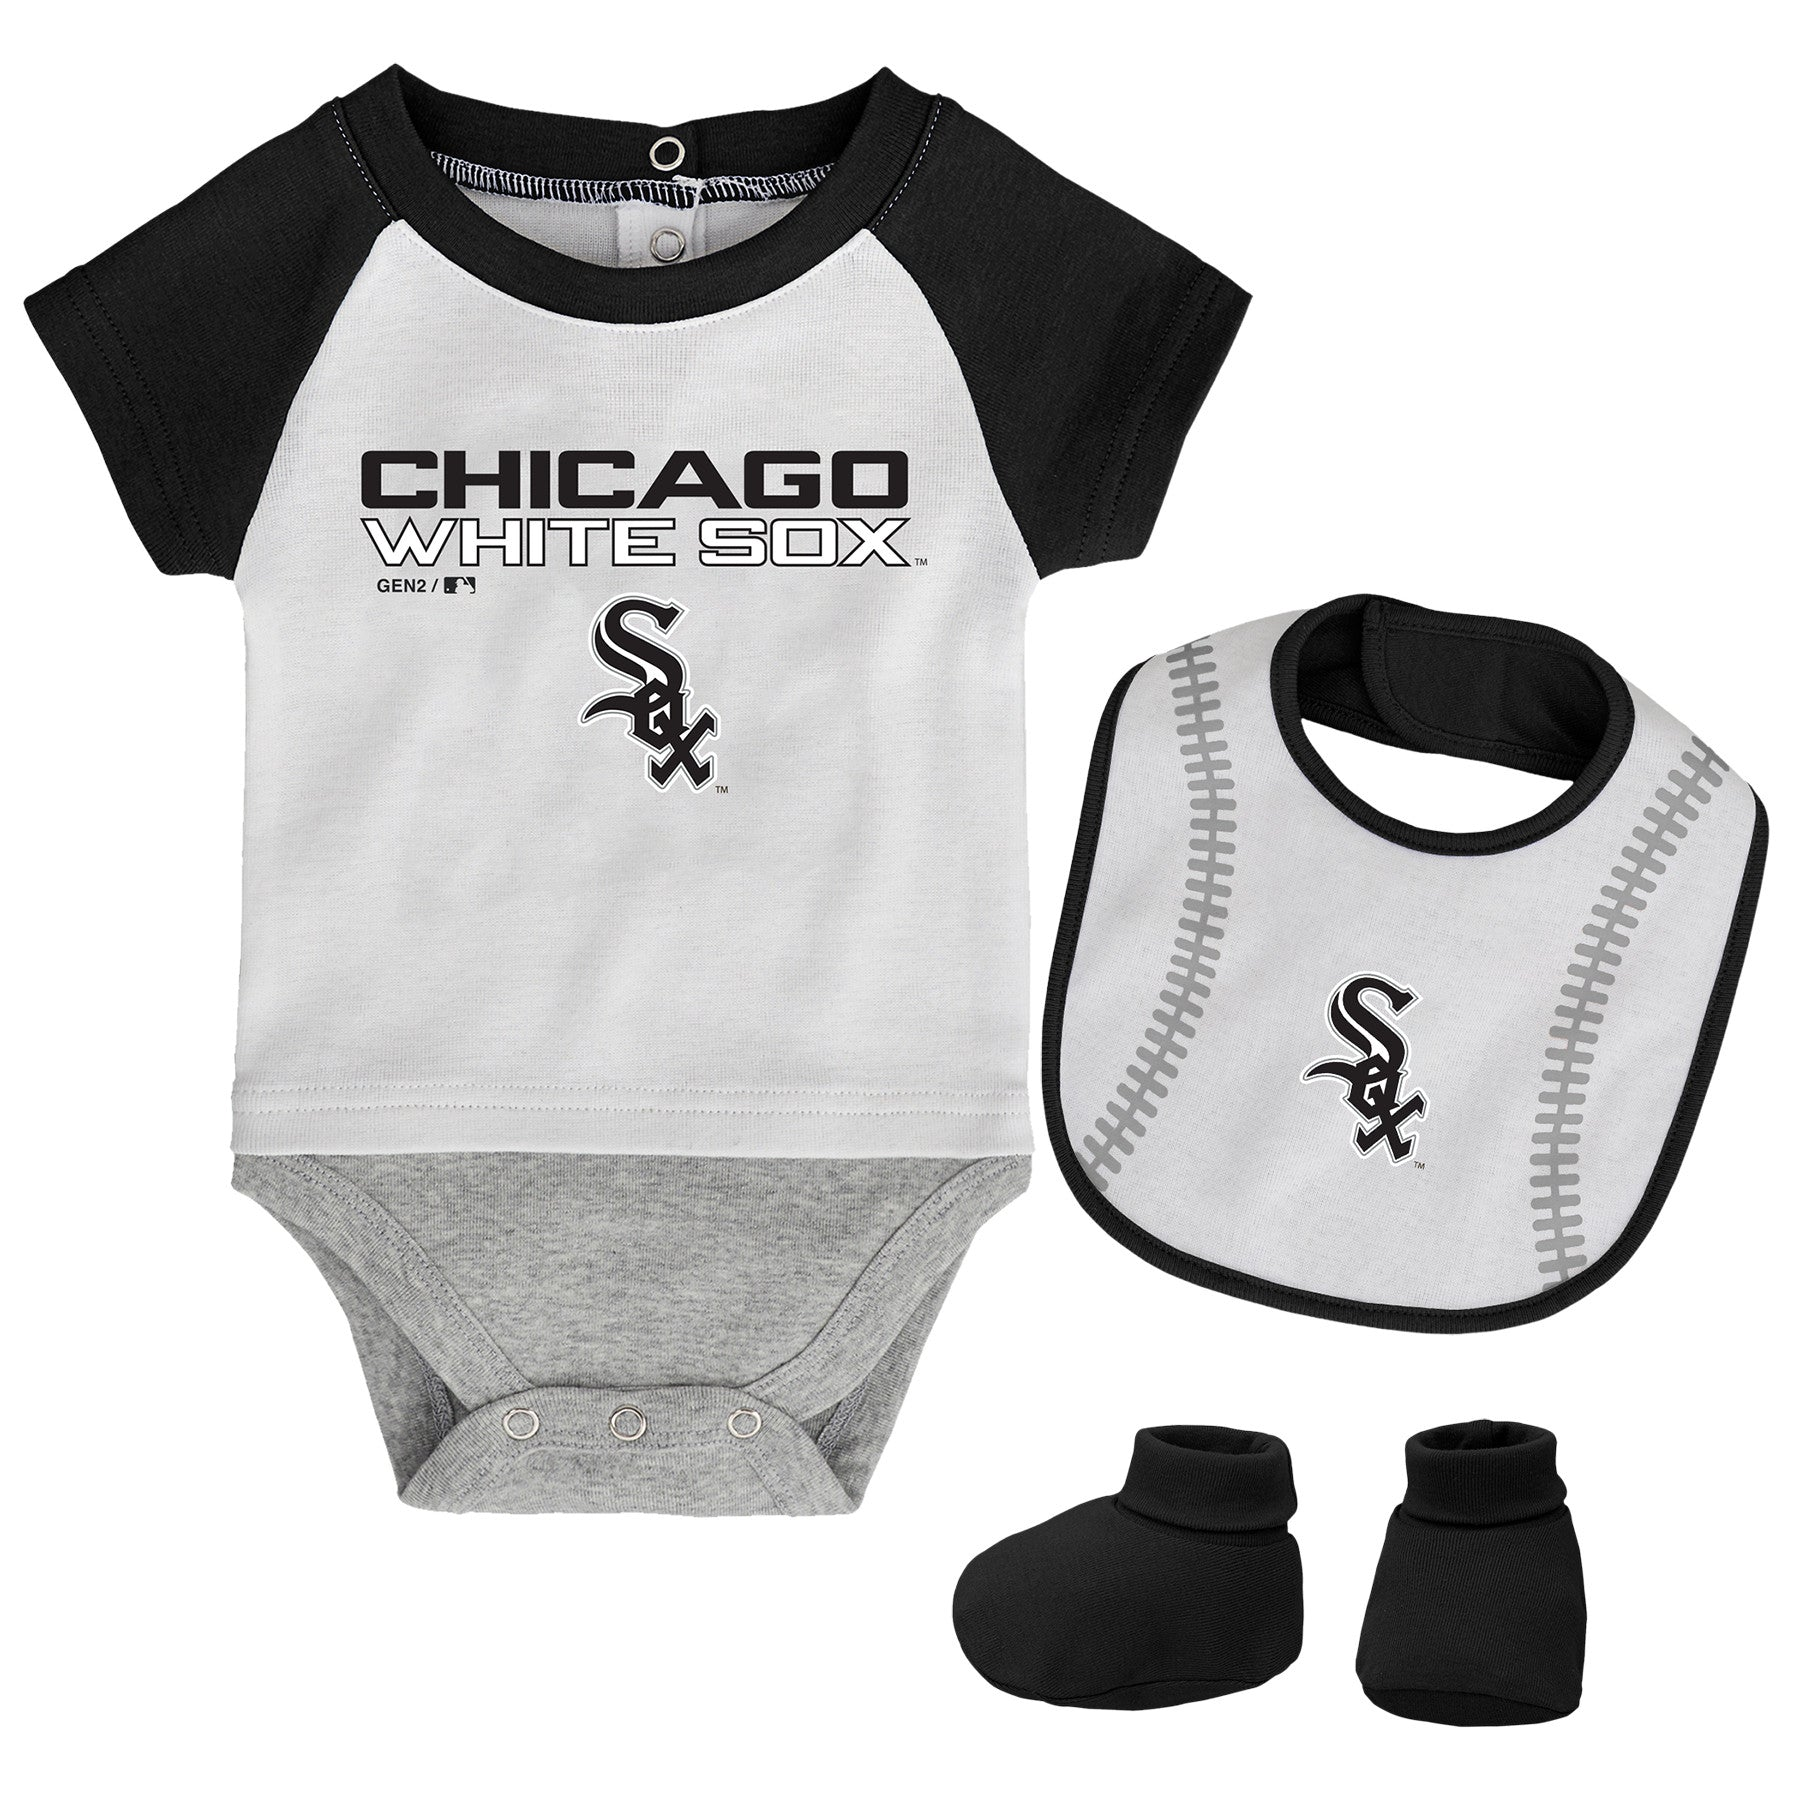 Chicago White Sox Baby Baby White Sox Outfit Chicago White Sox Baby Bodysuit Chicago White Sox Lace Logo Baby Baseball outfit